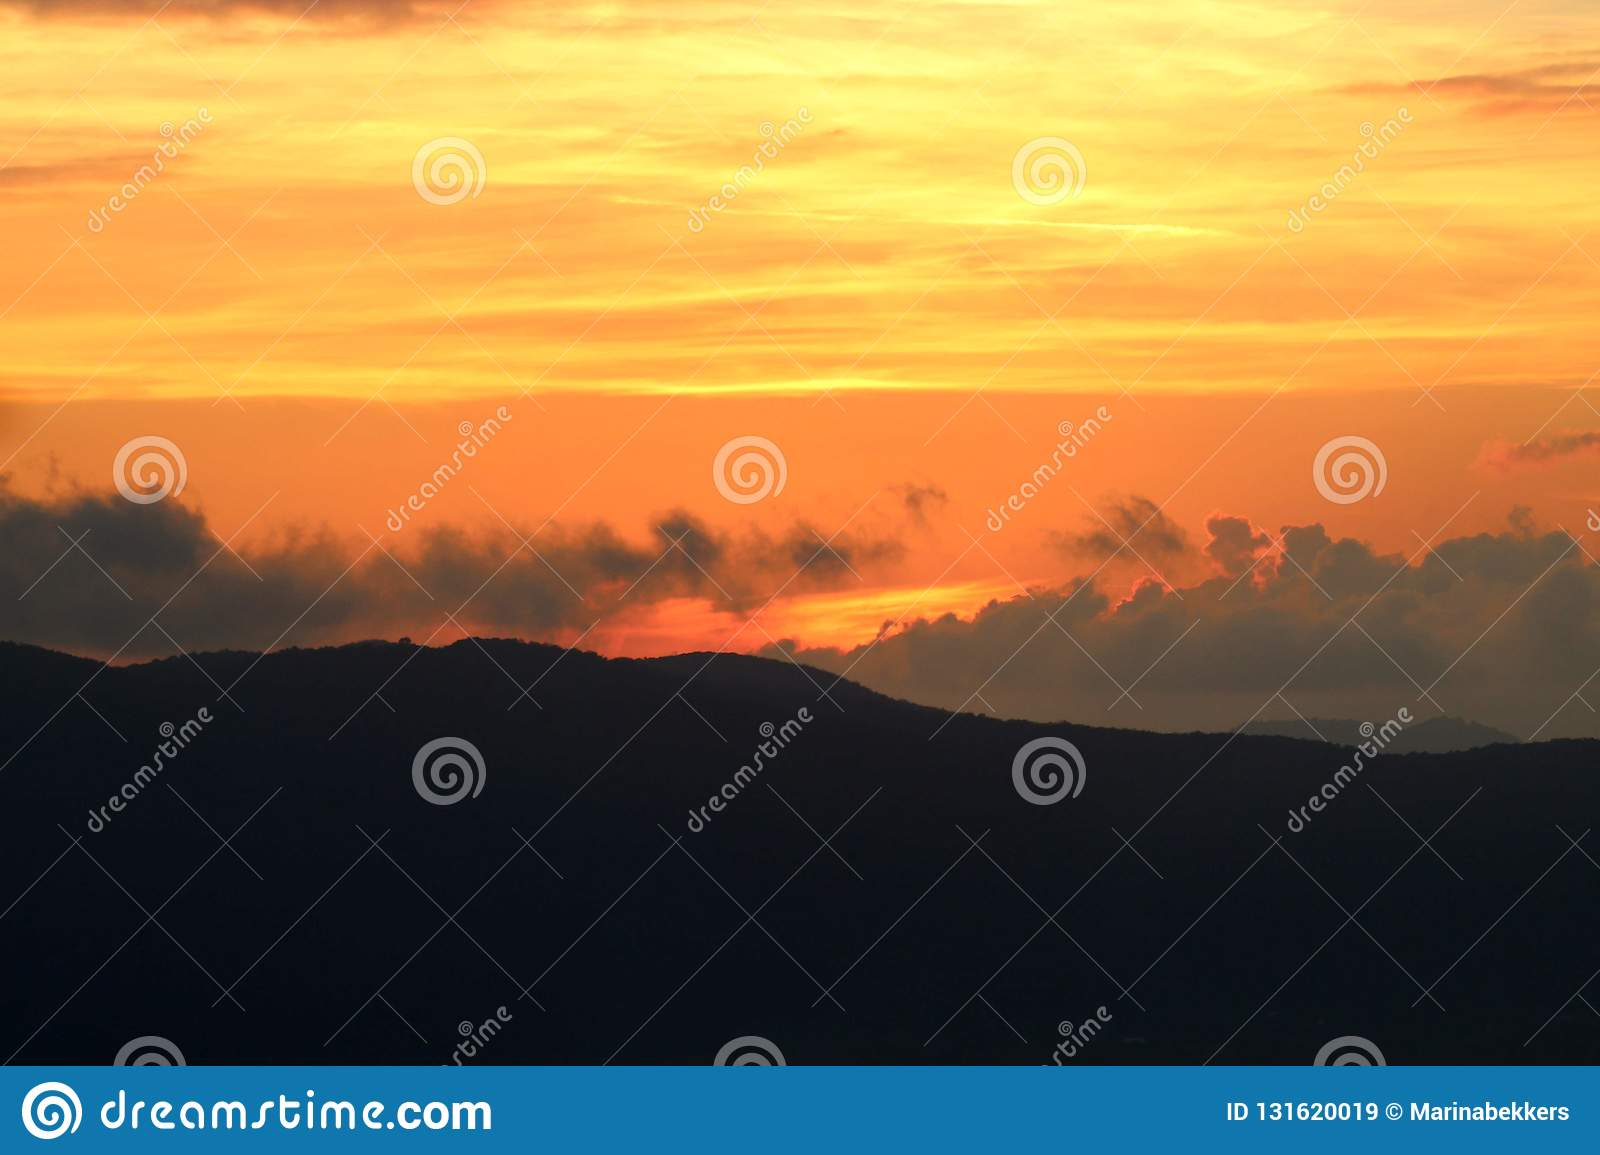 The beautiful sunset in the mountains